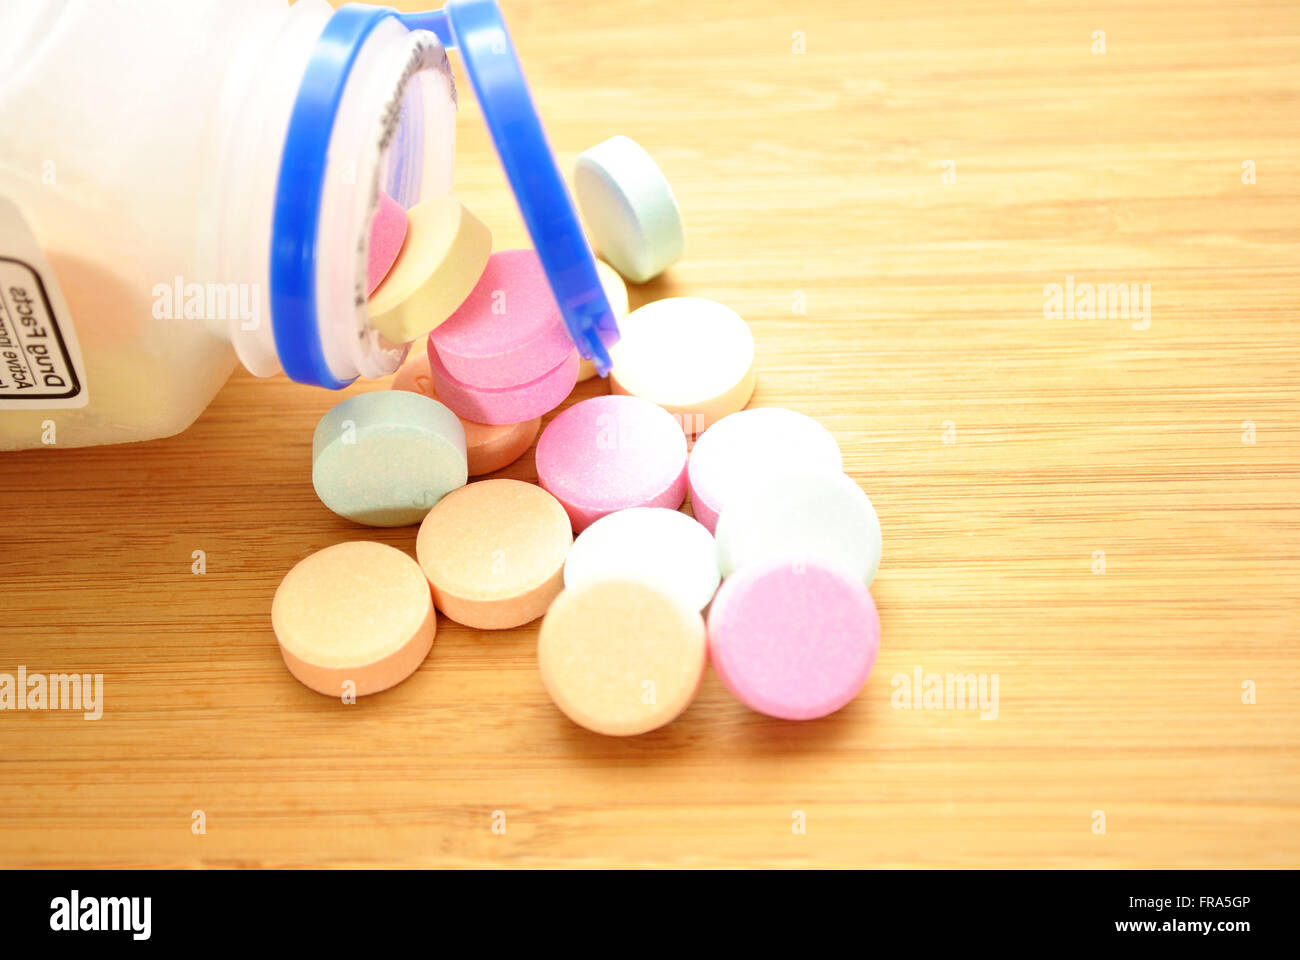 Over the Counter Antacids Falling out of the Bottle - Stock Image